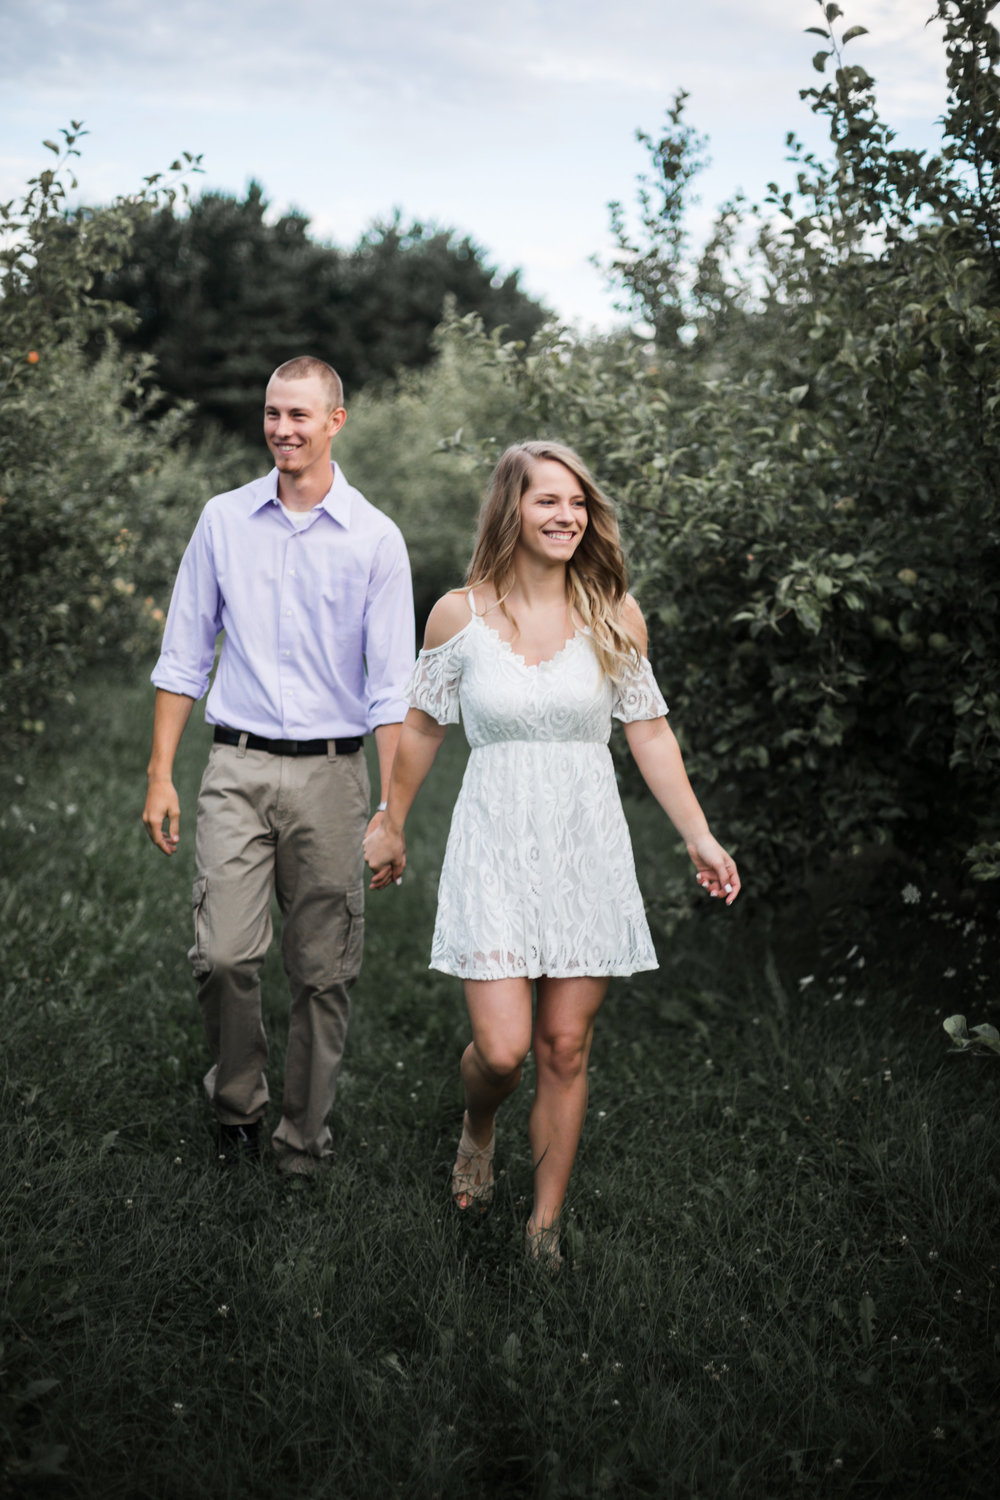 County Line Orchard engagement session by Chicago photographer